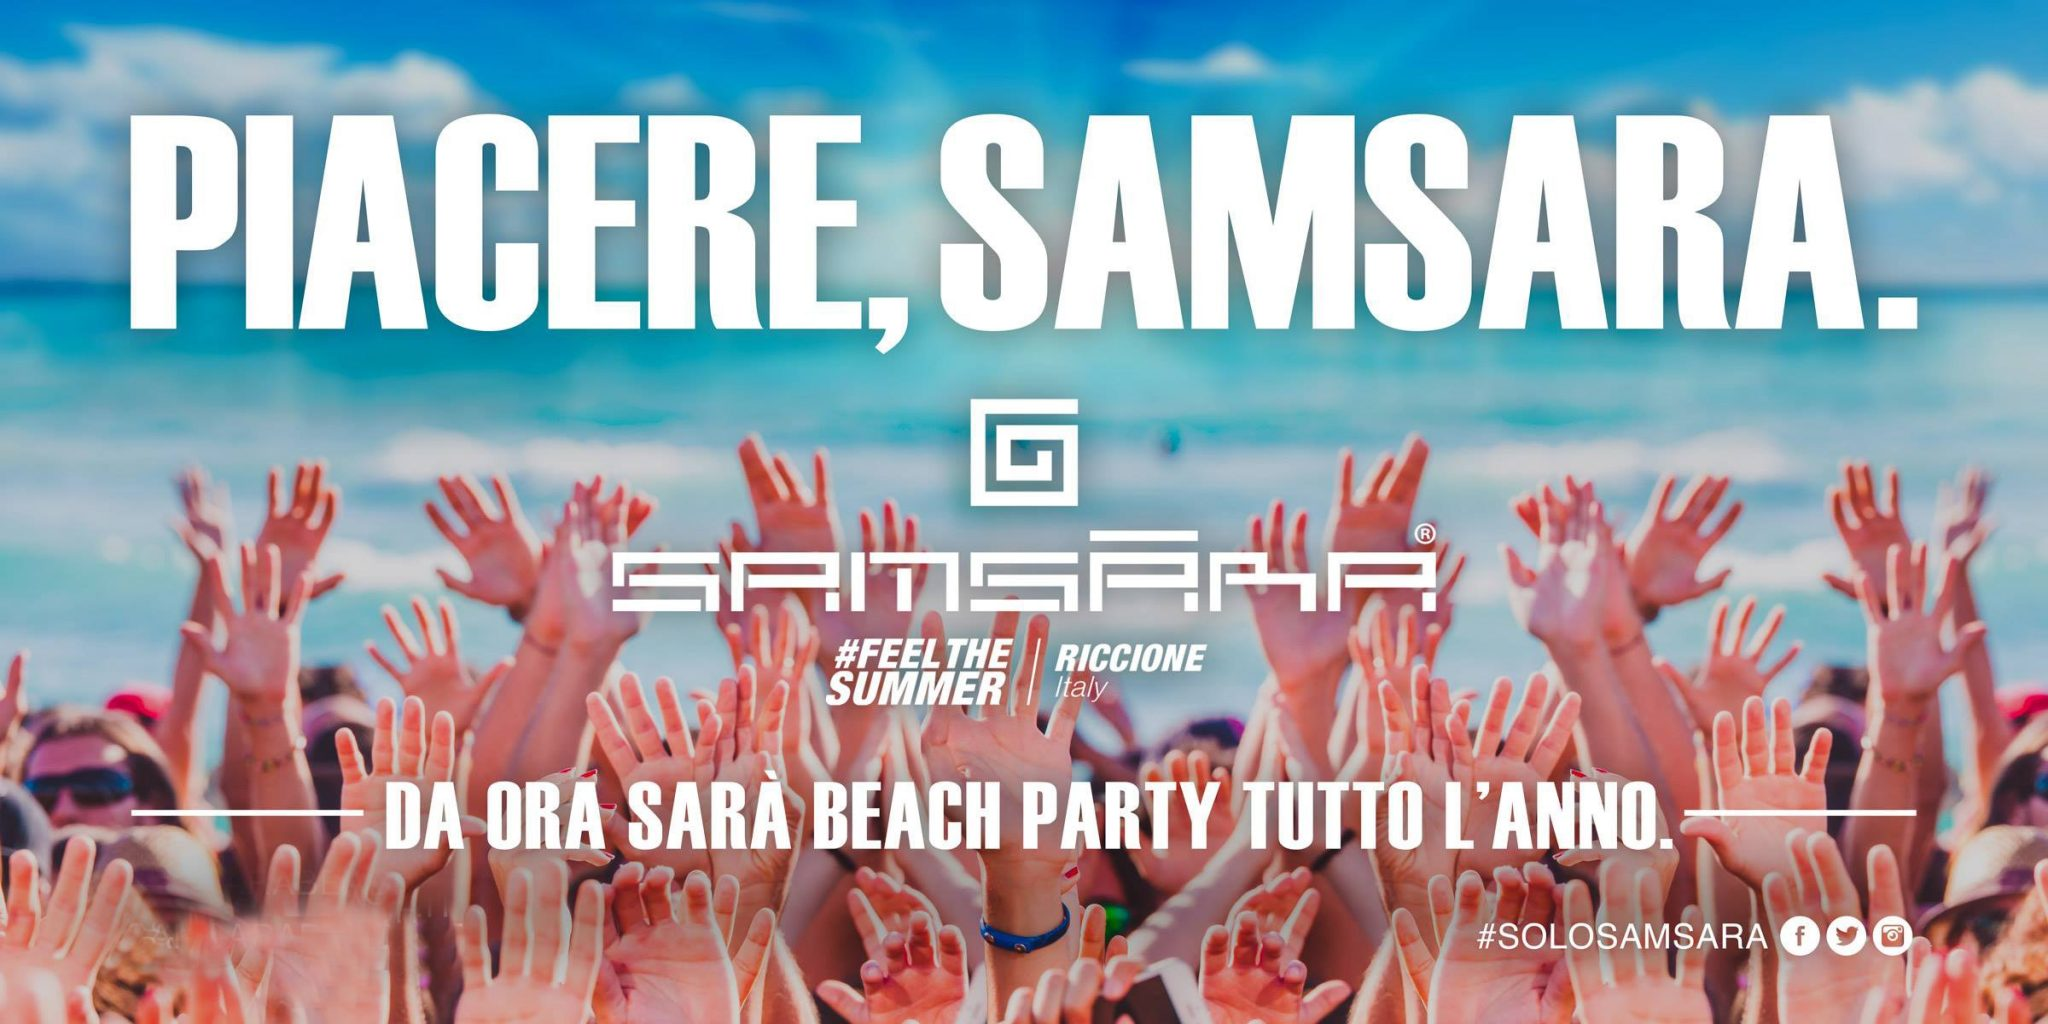 samsara-playa-gallipoli-cama-a-lu-fanizza